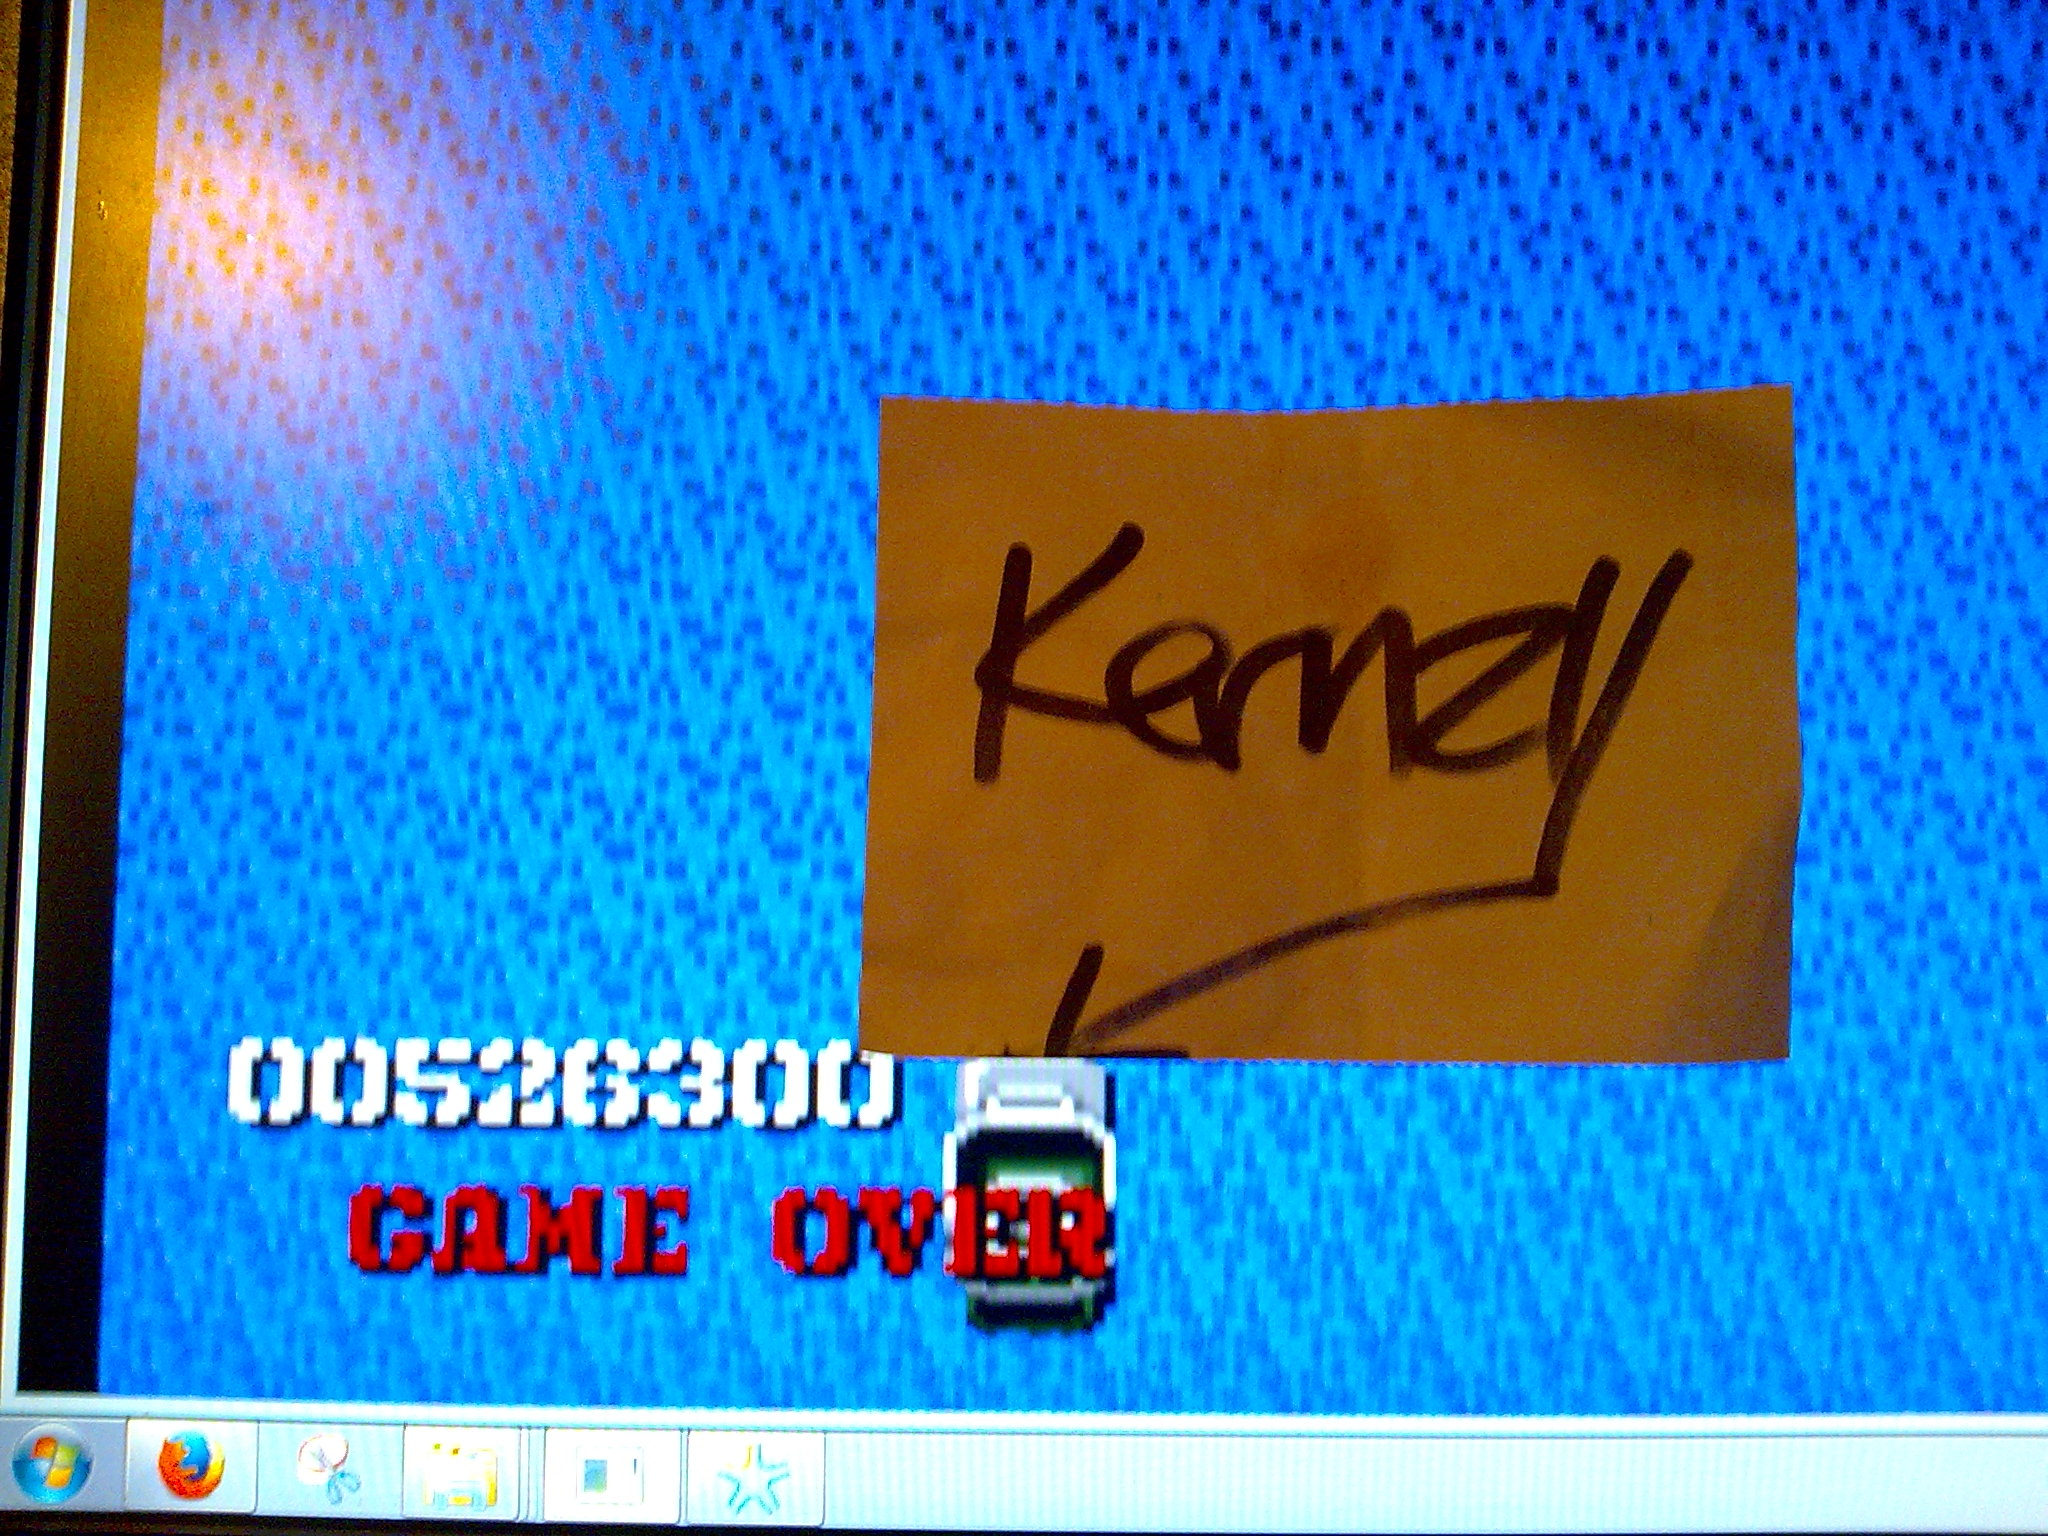 kernzy: 1943 Kai (TurboGrafx-16/PC Engine Emulated) 526,300 points on 2014-10-09 12:09:55